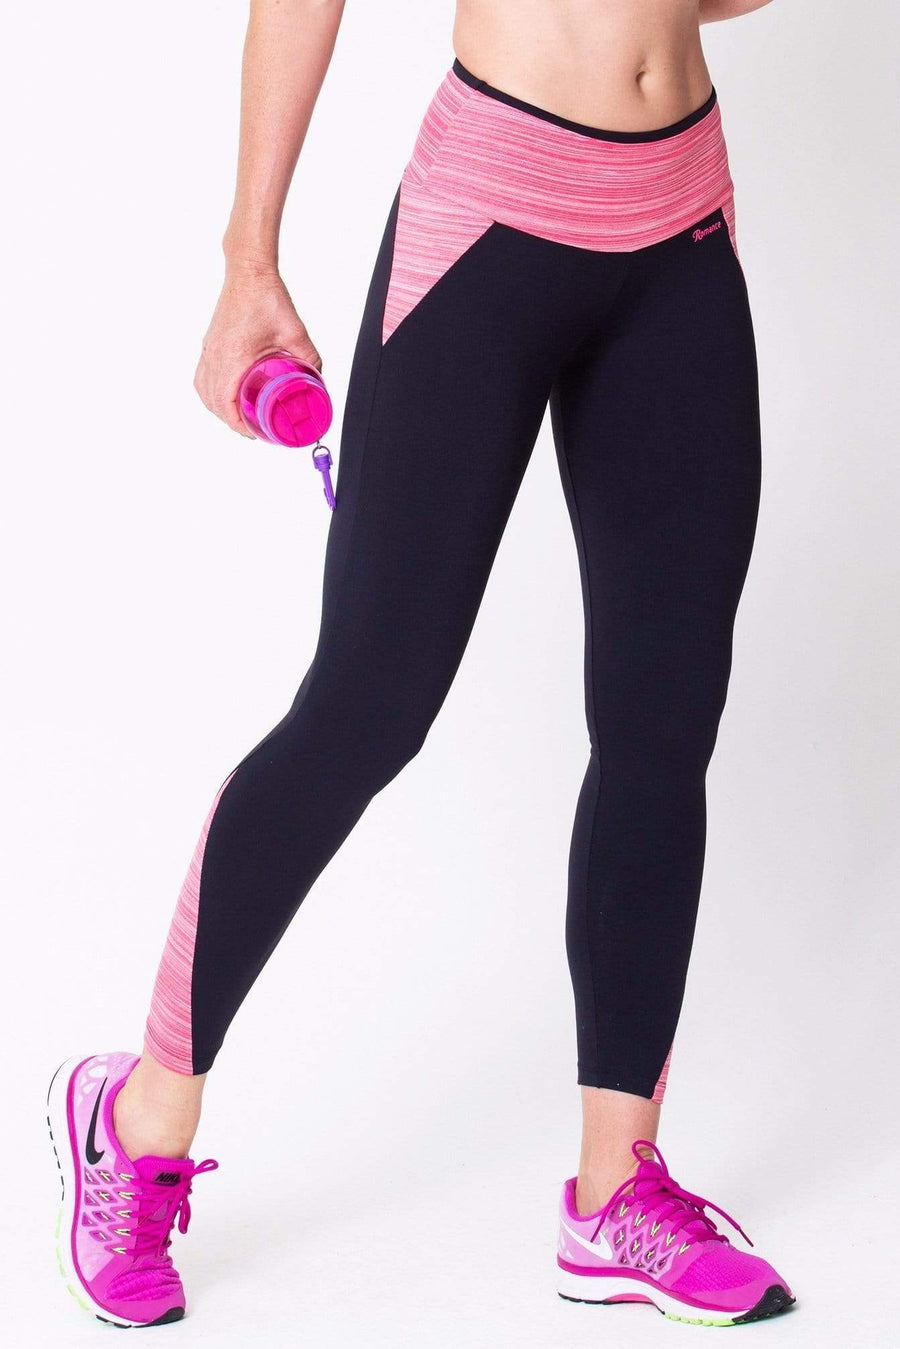 Pink	Superflex Leggings - Sam's Fitness Goods